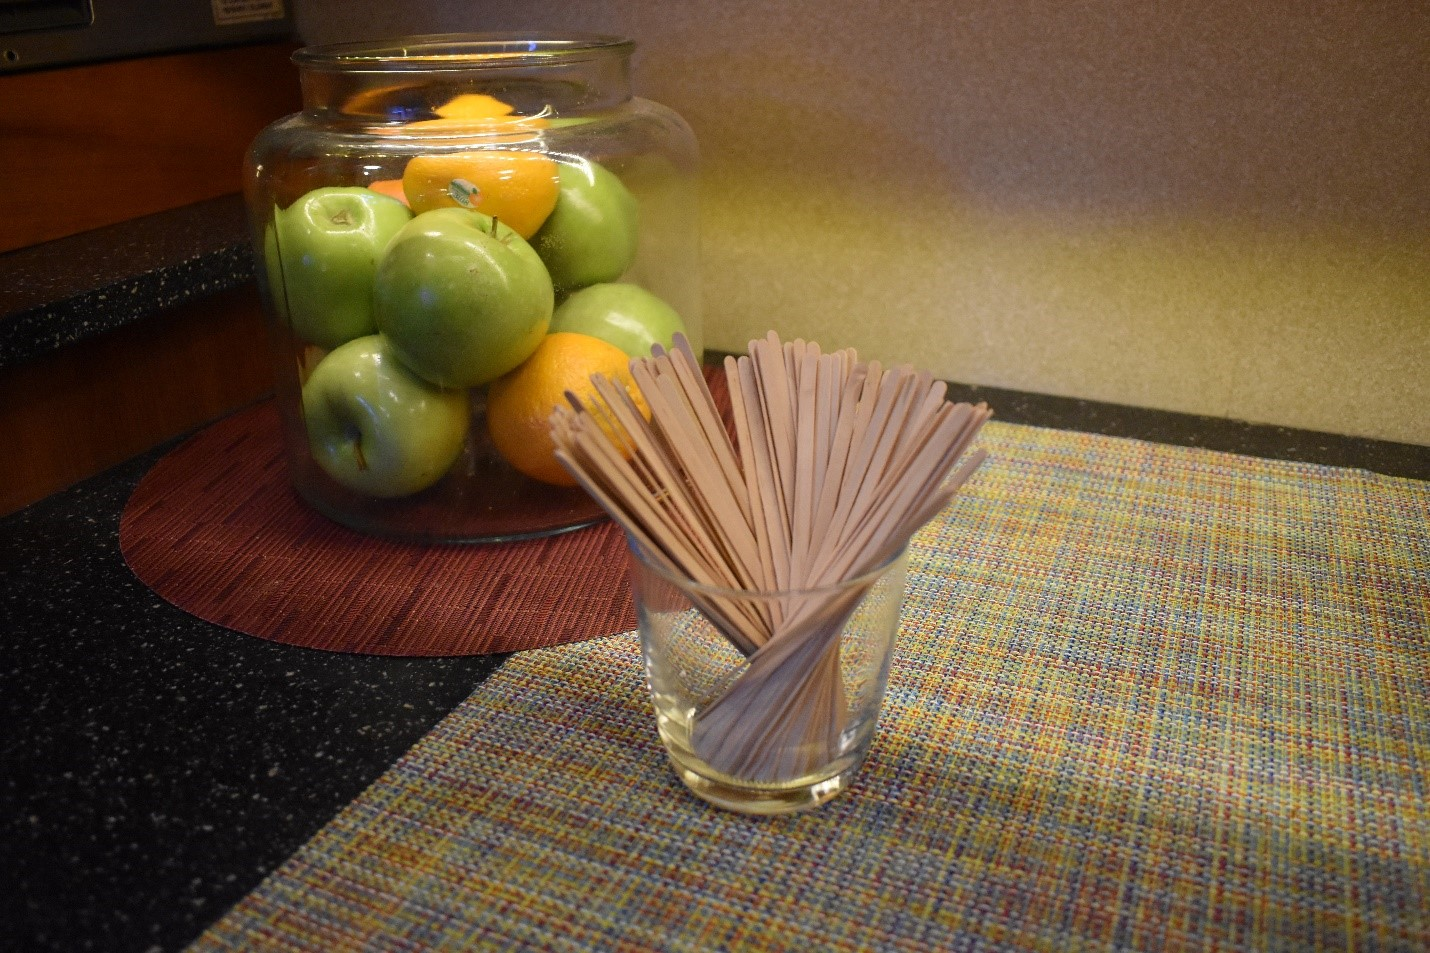 Lindblad Expeditions also uses wooden stirrers instead of plastic ones.